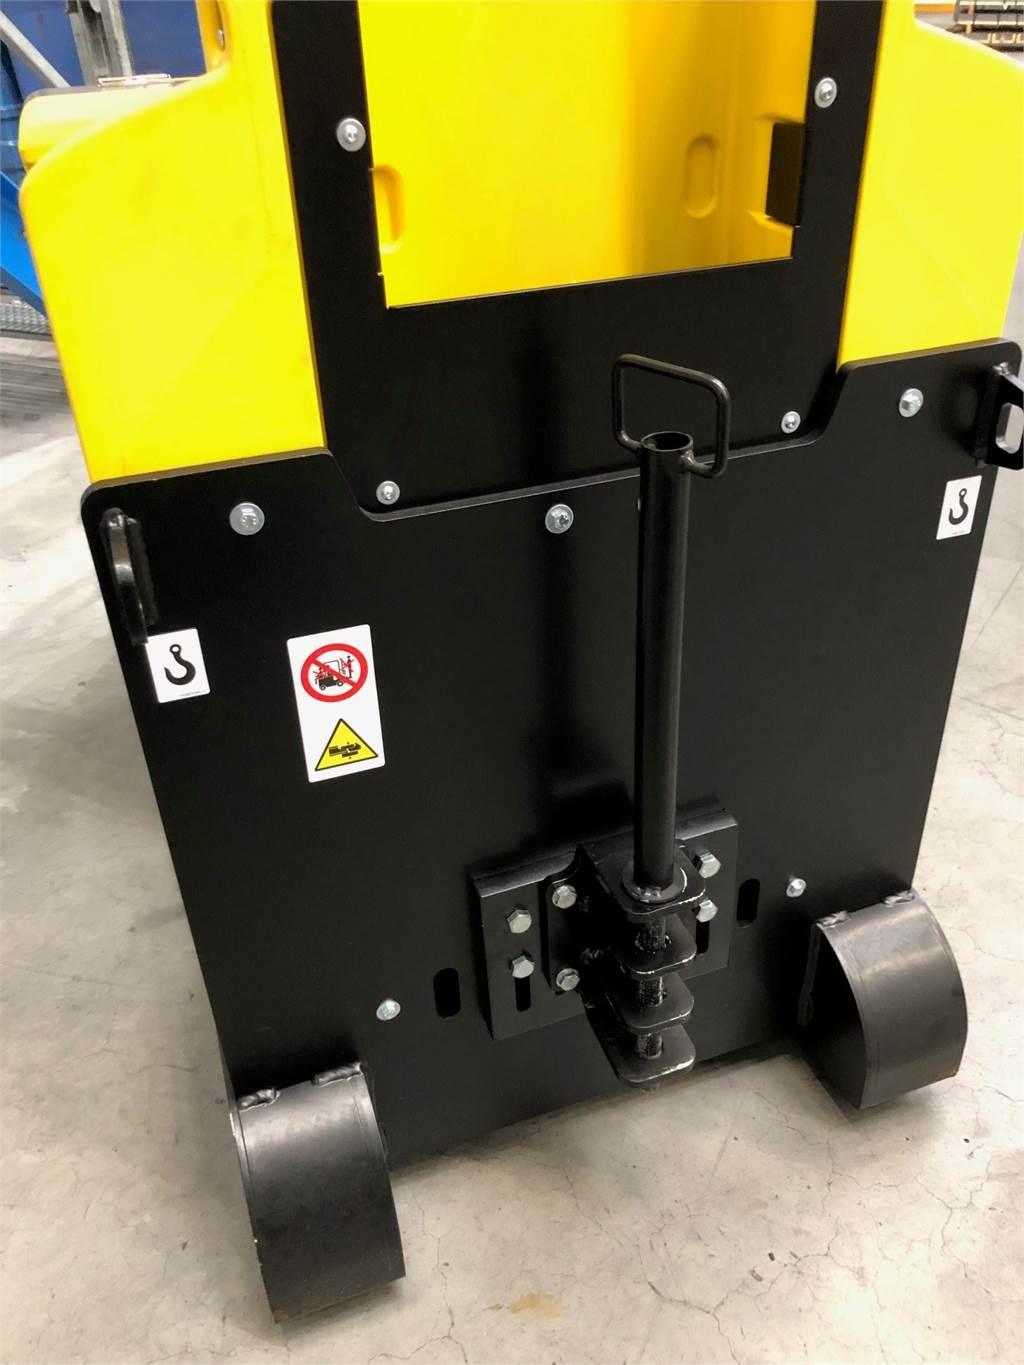 Hyster LO5.0T, Warehouse Equipment - Other, Material Handling